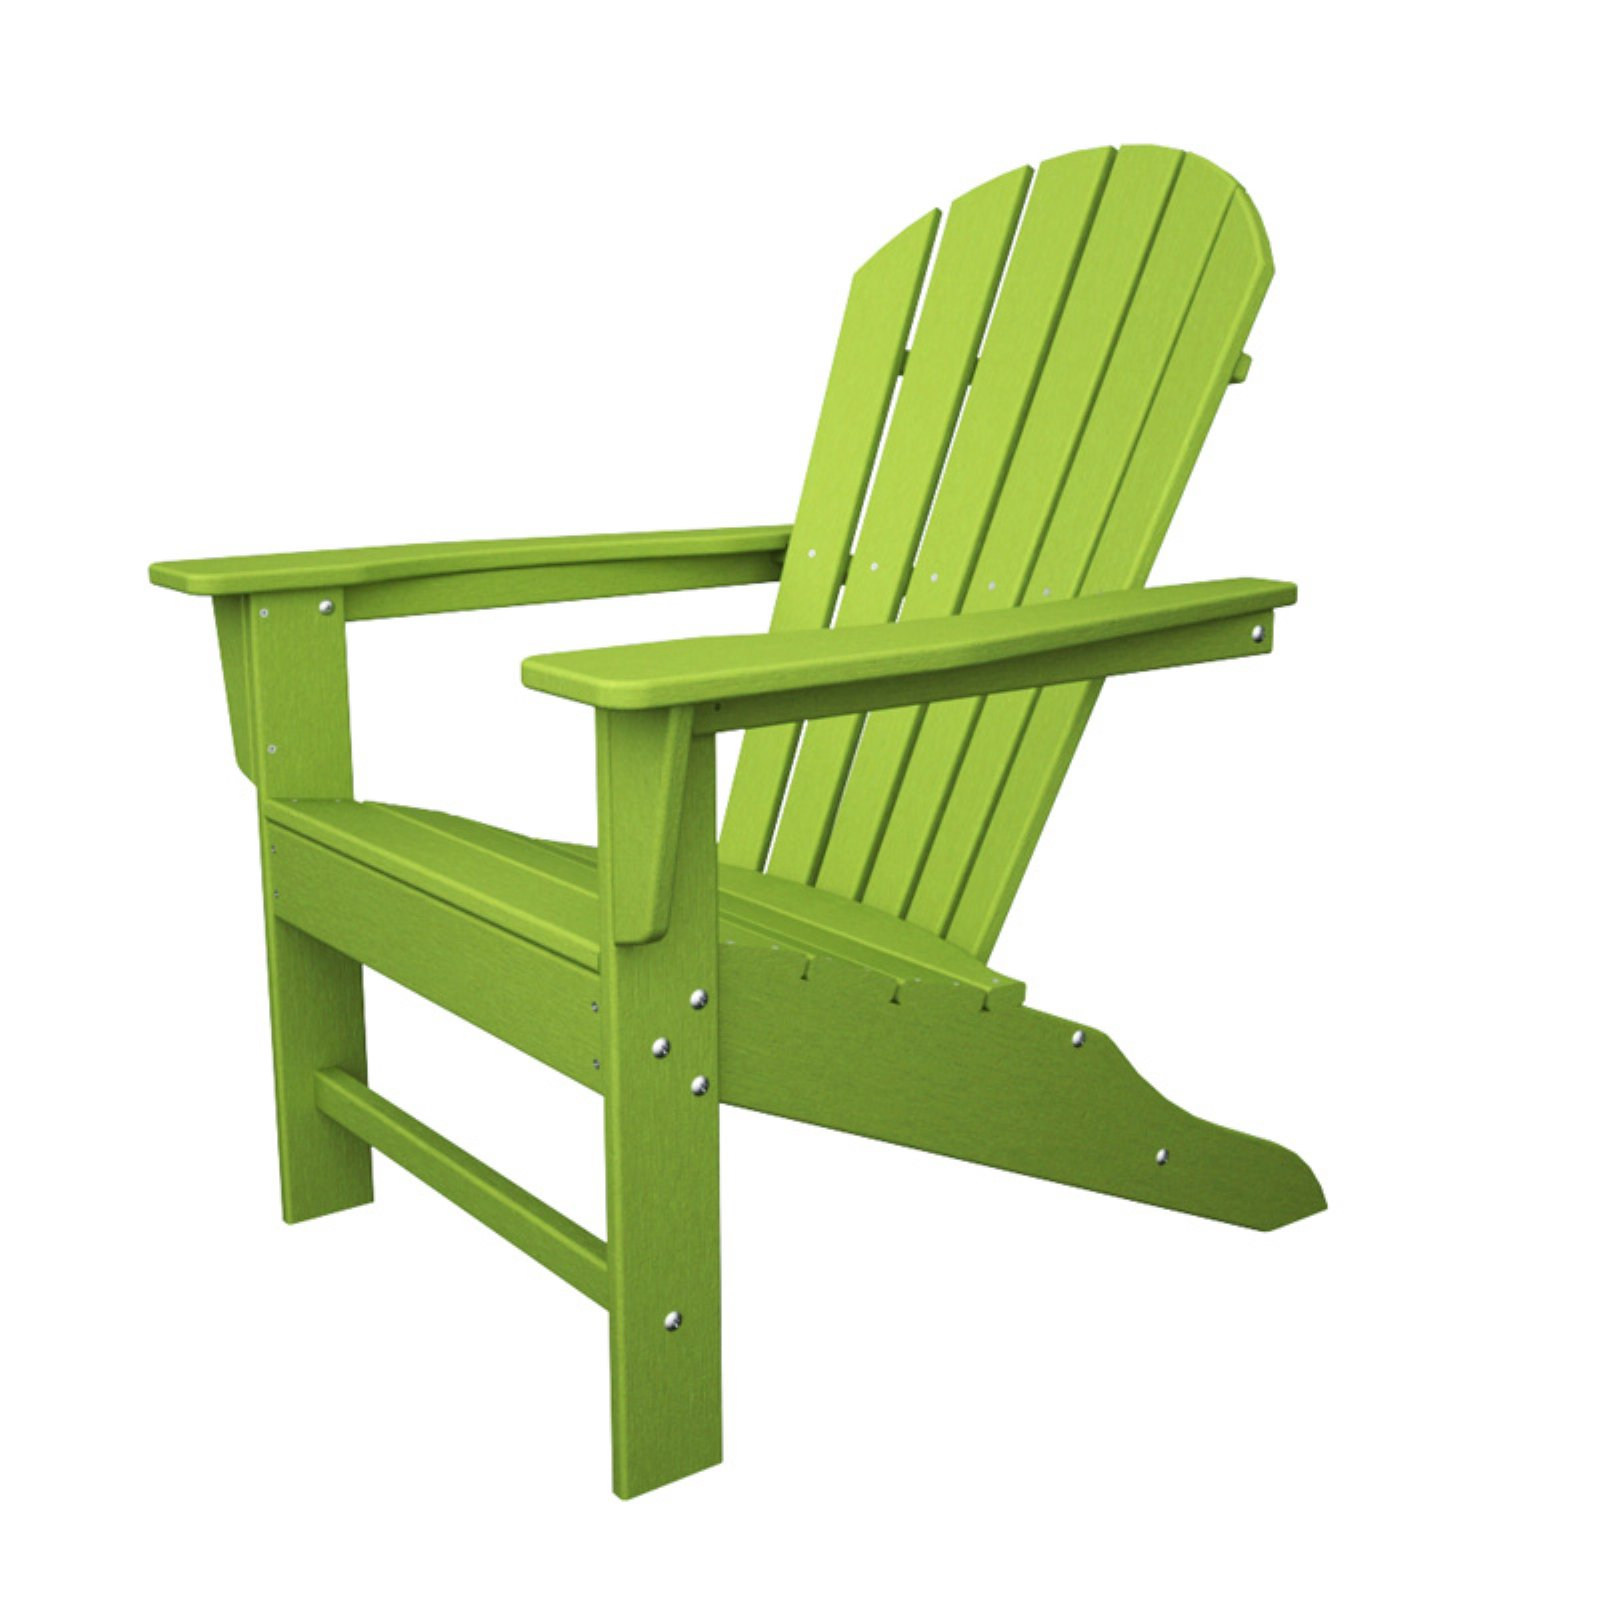 POLYWOOD South Beach Recycled Plastic Adirondack Chair by Polywood